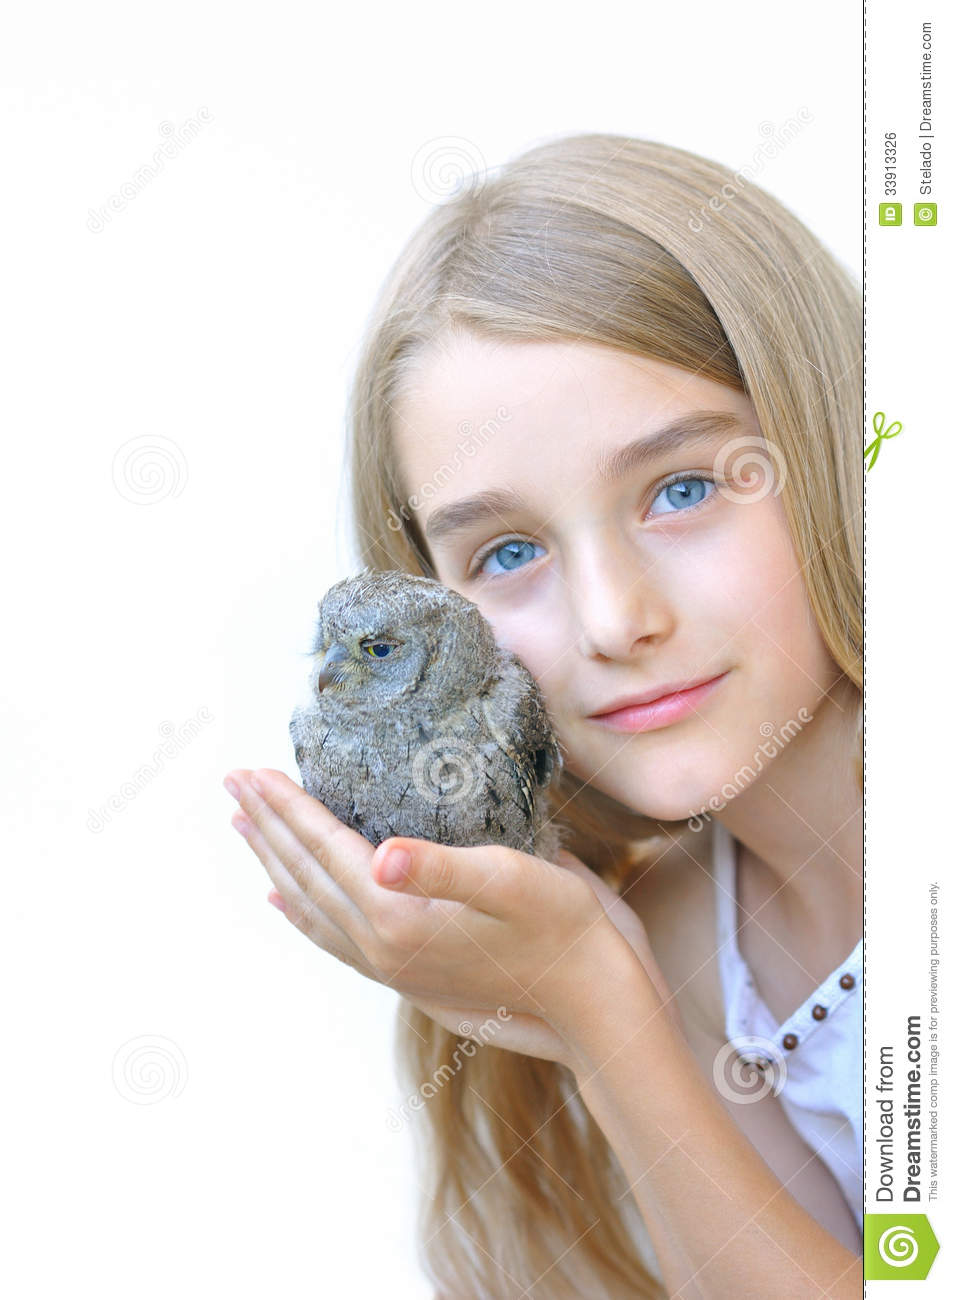 Little girl holding an owl in his hands on a white background.